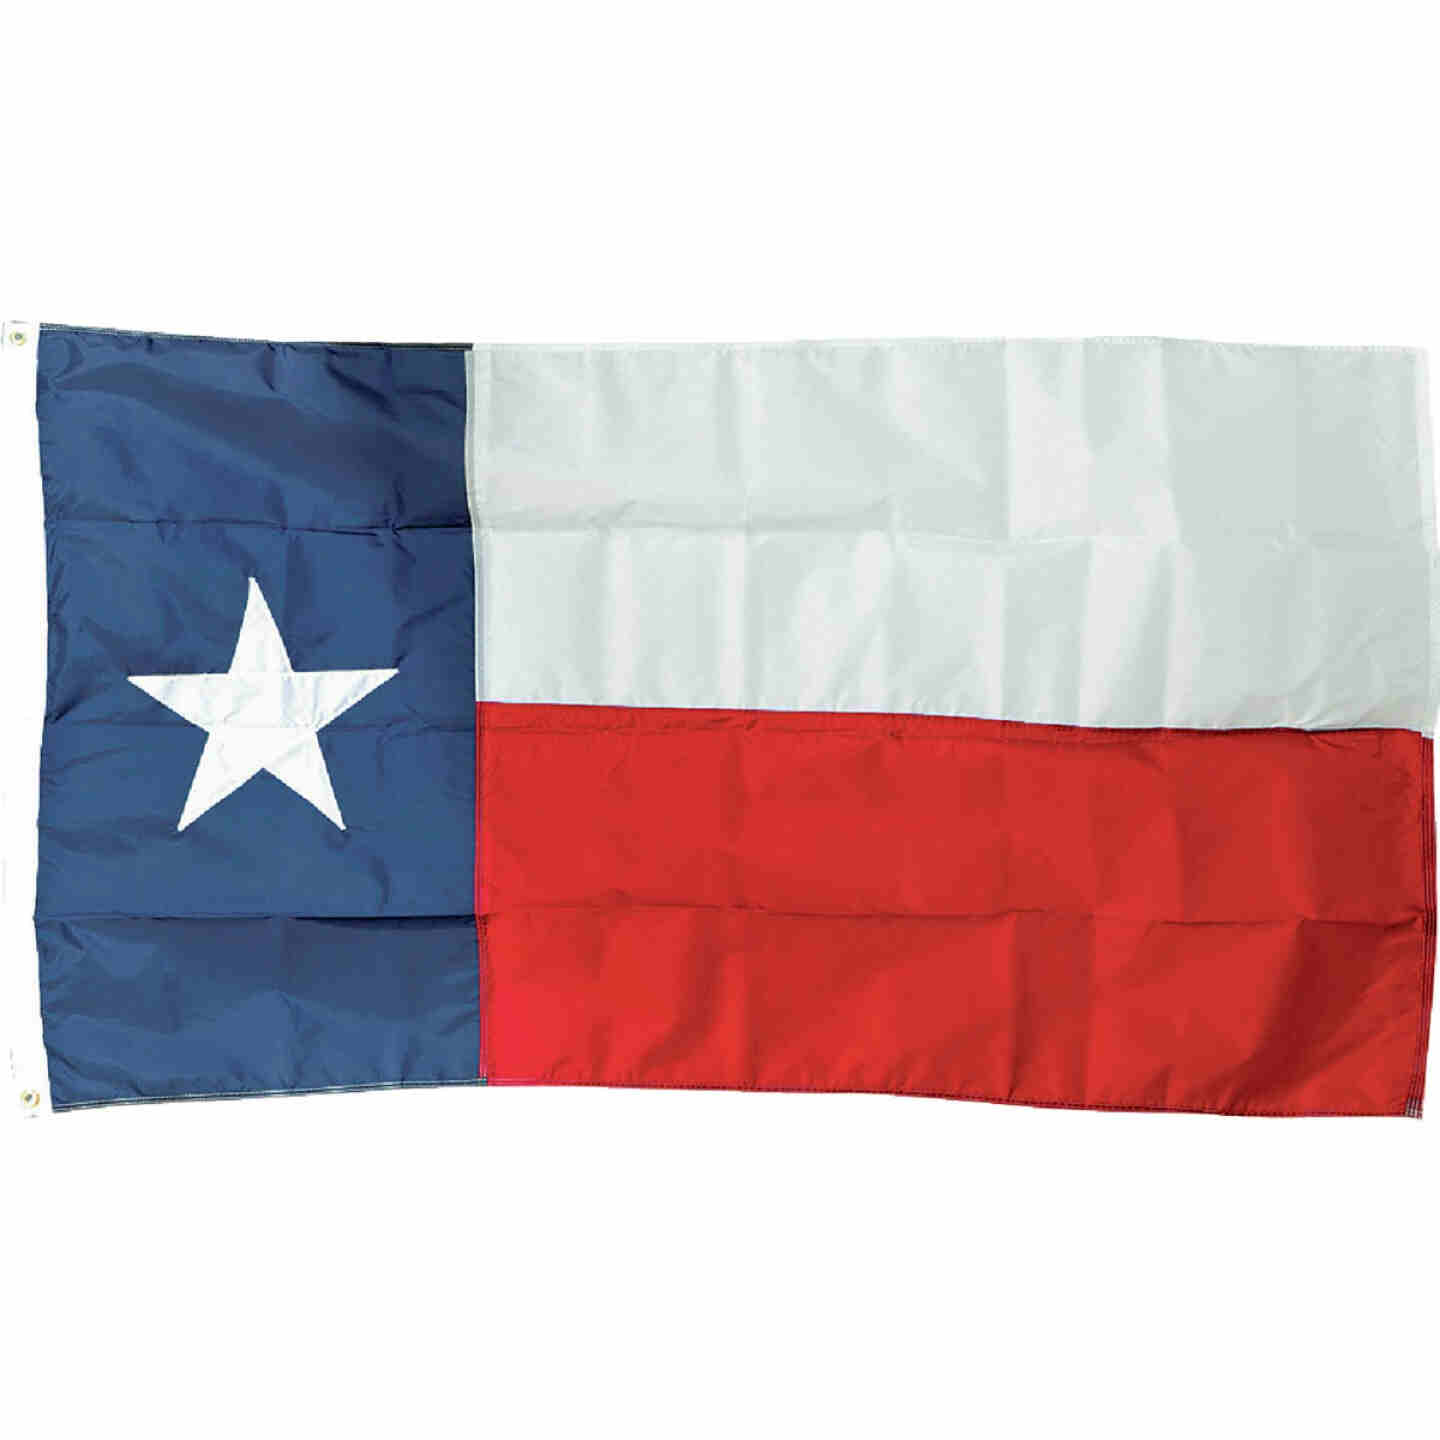 Valley Forge 3 Ft. x 5 Ft. Printed Nylon Texas State Flag Image 1